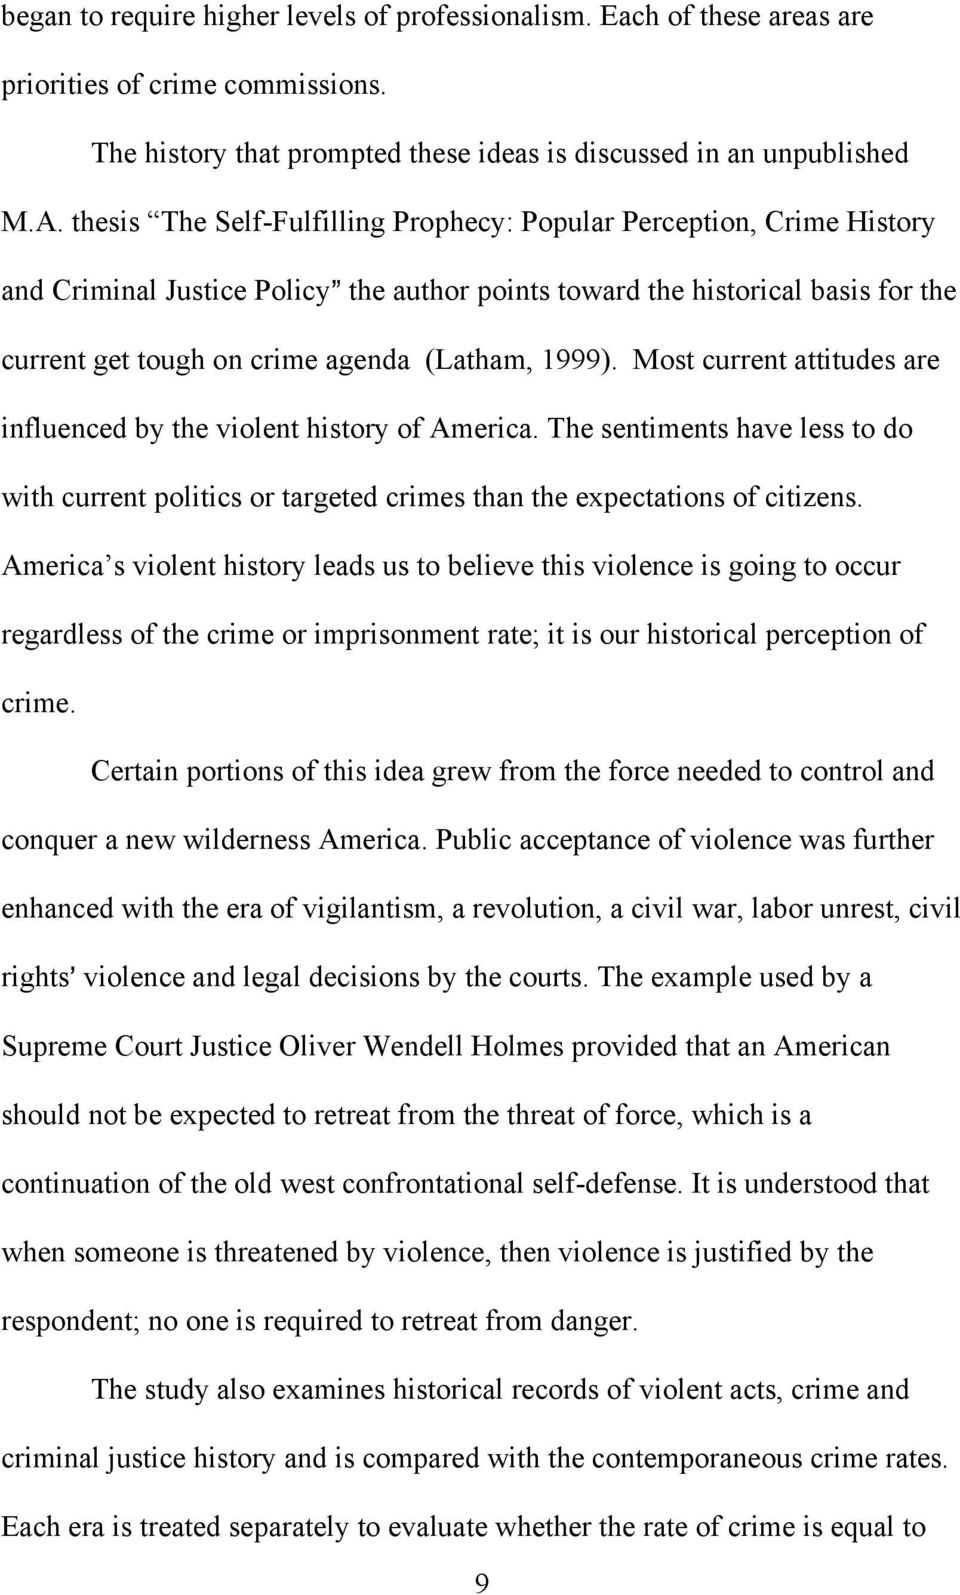 1999). Most current attitudes are influenced by the violent history of America. The sentiments have less to do with current politics or targeted crimes than the expectations of citizens.